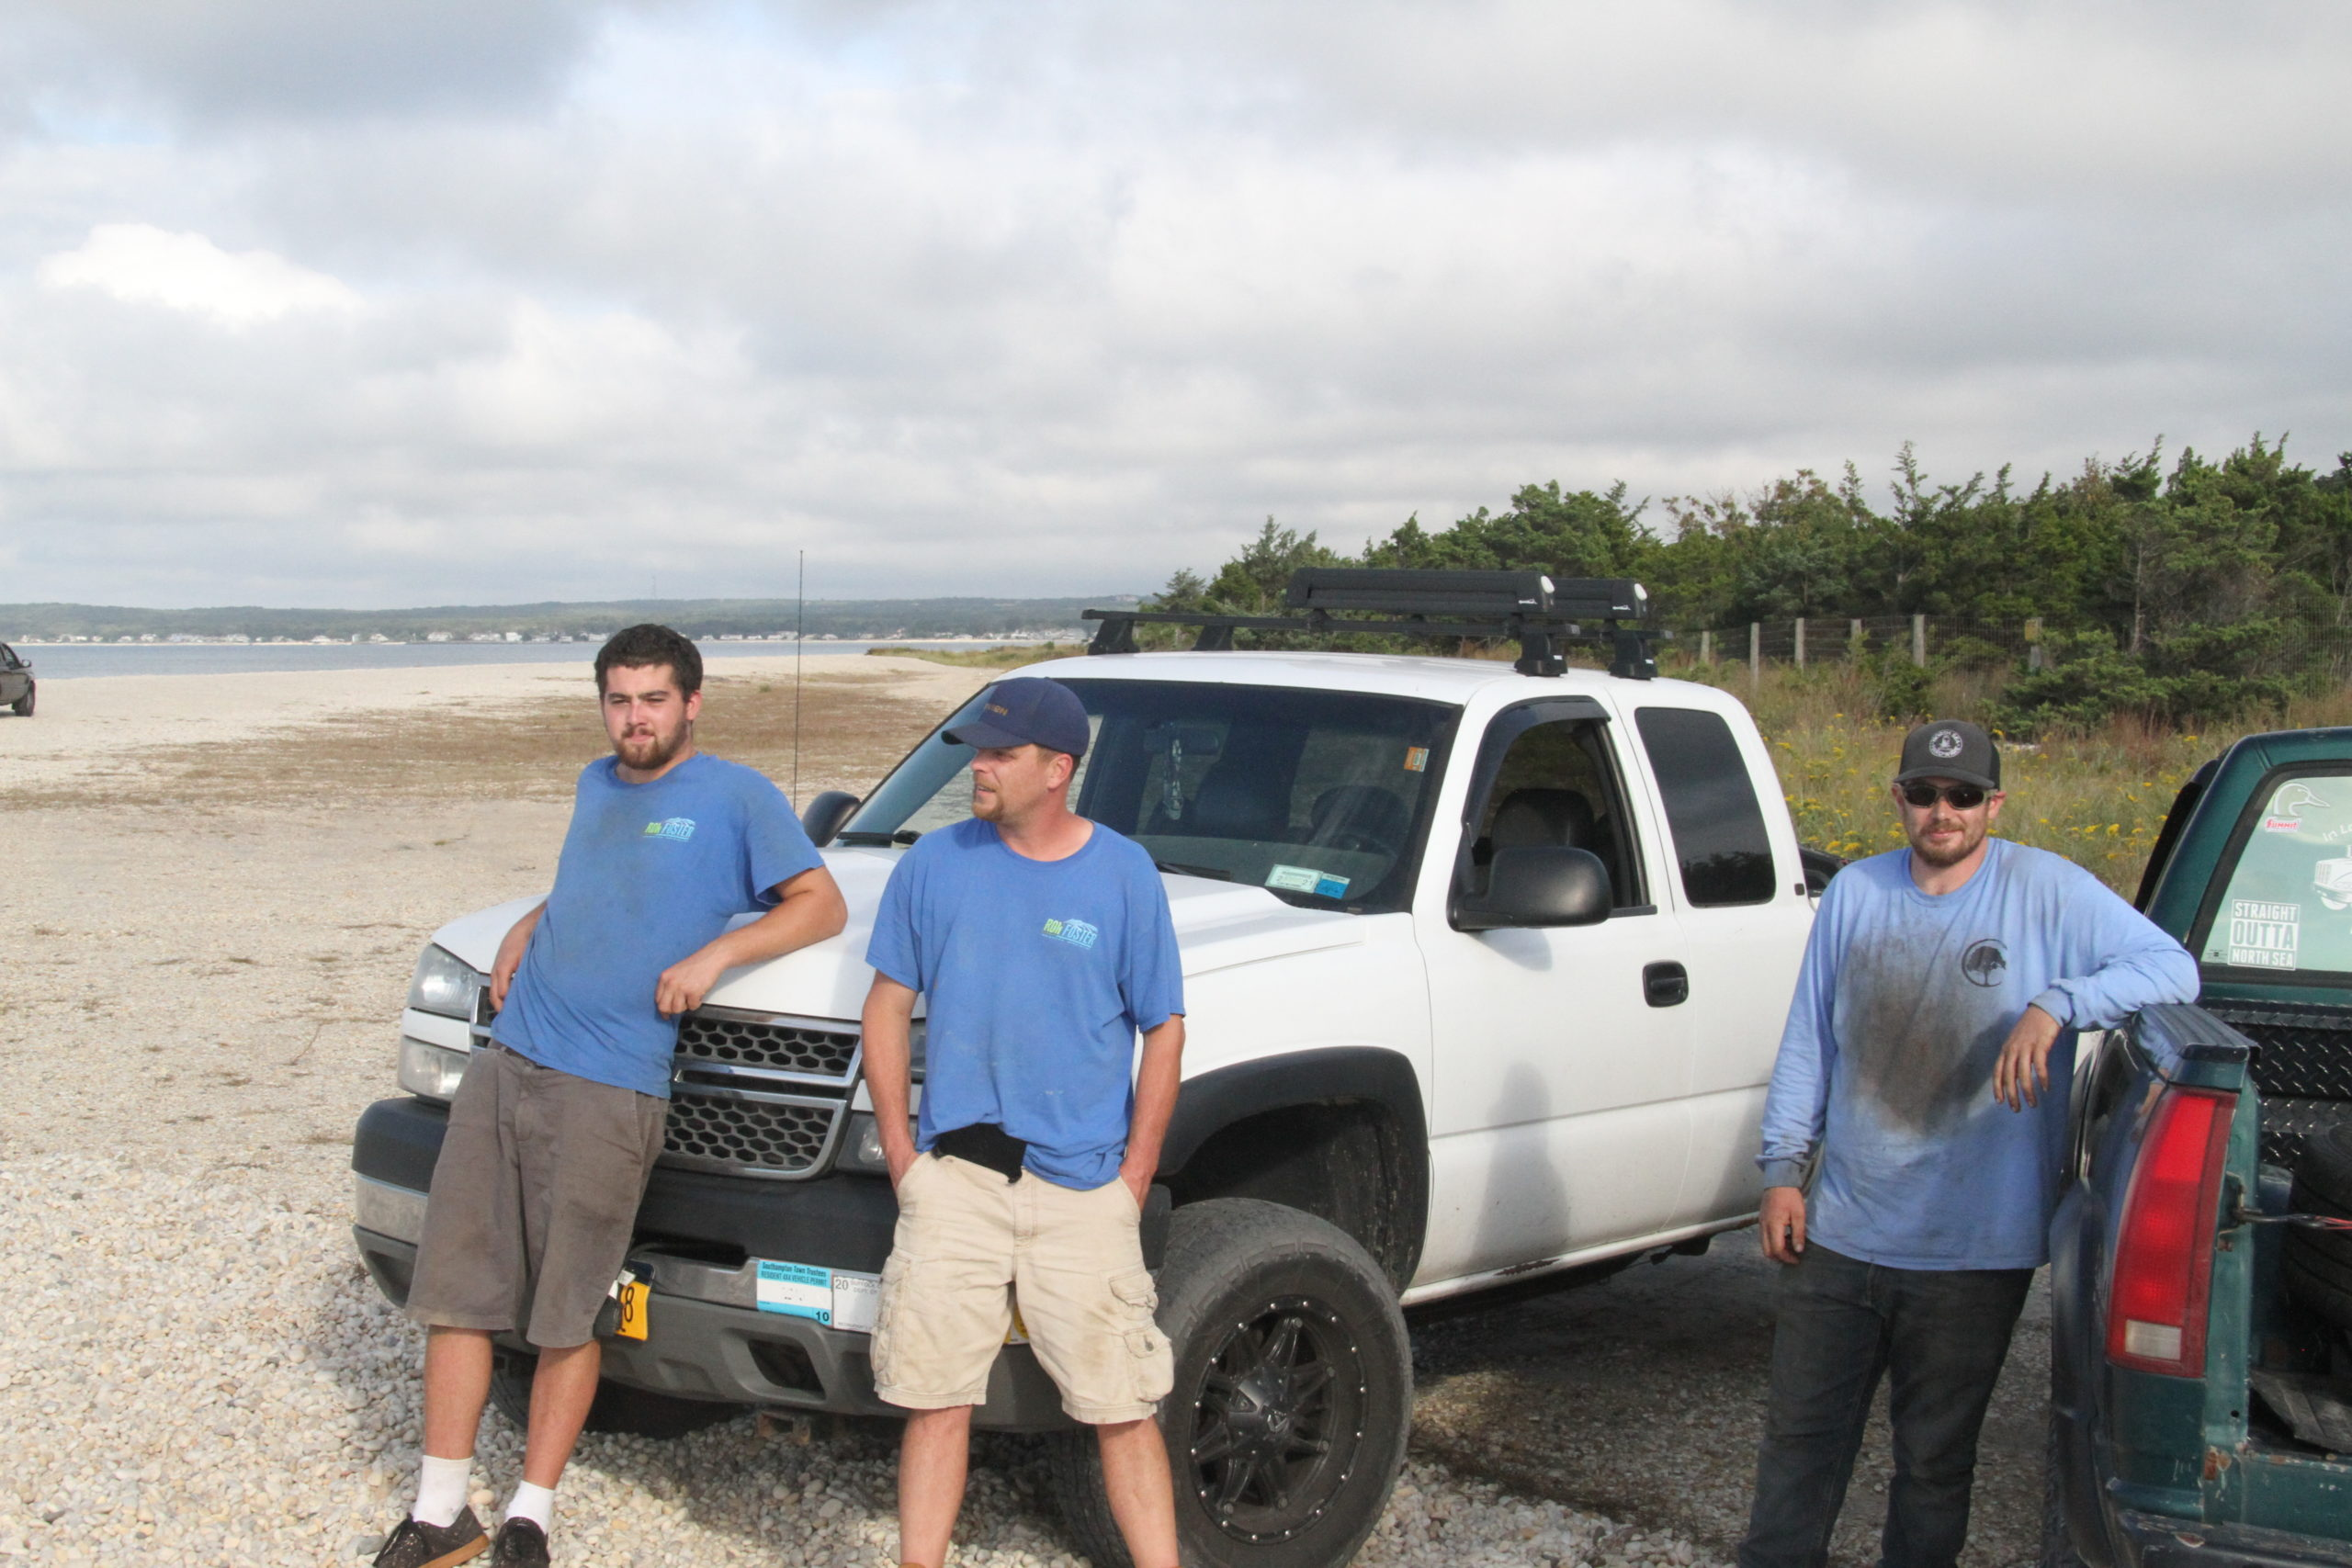 Liam MacWhinnie, left, Todd Foster, center and Patrick McGay say they visit North Sea Beach in their 4x4 vehicles almost every day.